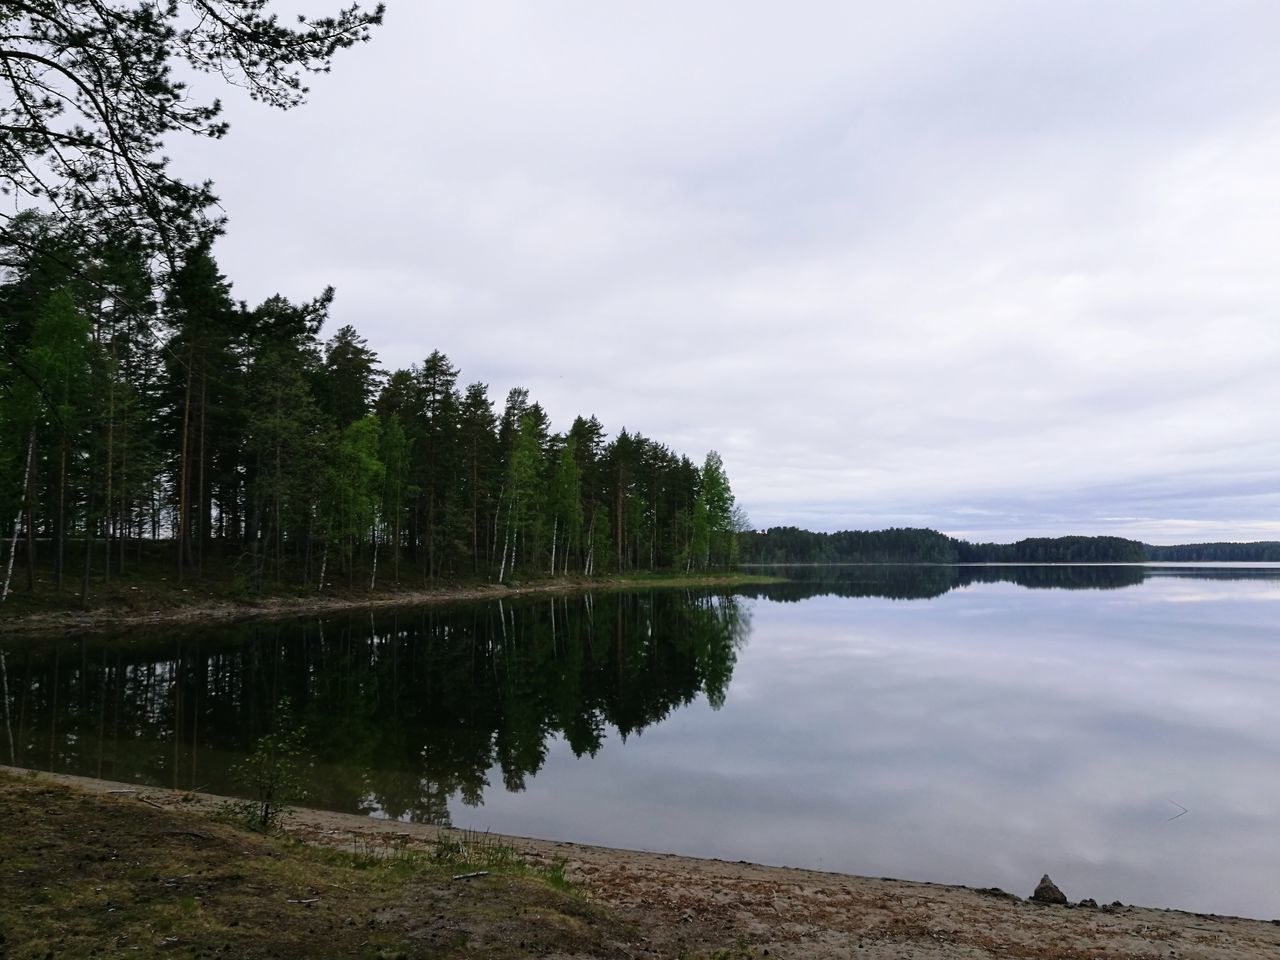 Tree Lake Water Reflection Cloud - Sky Outdoors No People Sky Tranquility Nature Landscape Beauty In Nature Vacations Scenics Day Finland :) Finland_photolovers Savonlinna Opera Festival Finlande Finland Savonlinna Finland Savonlinna Finland Punkaharju Finland Tree Area Tranquility Growth